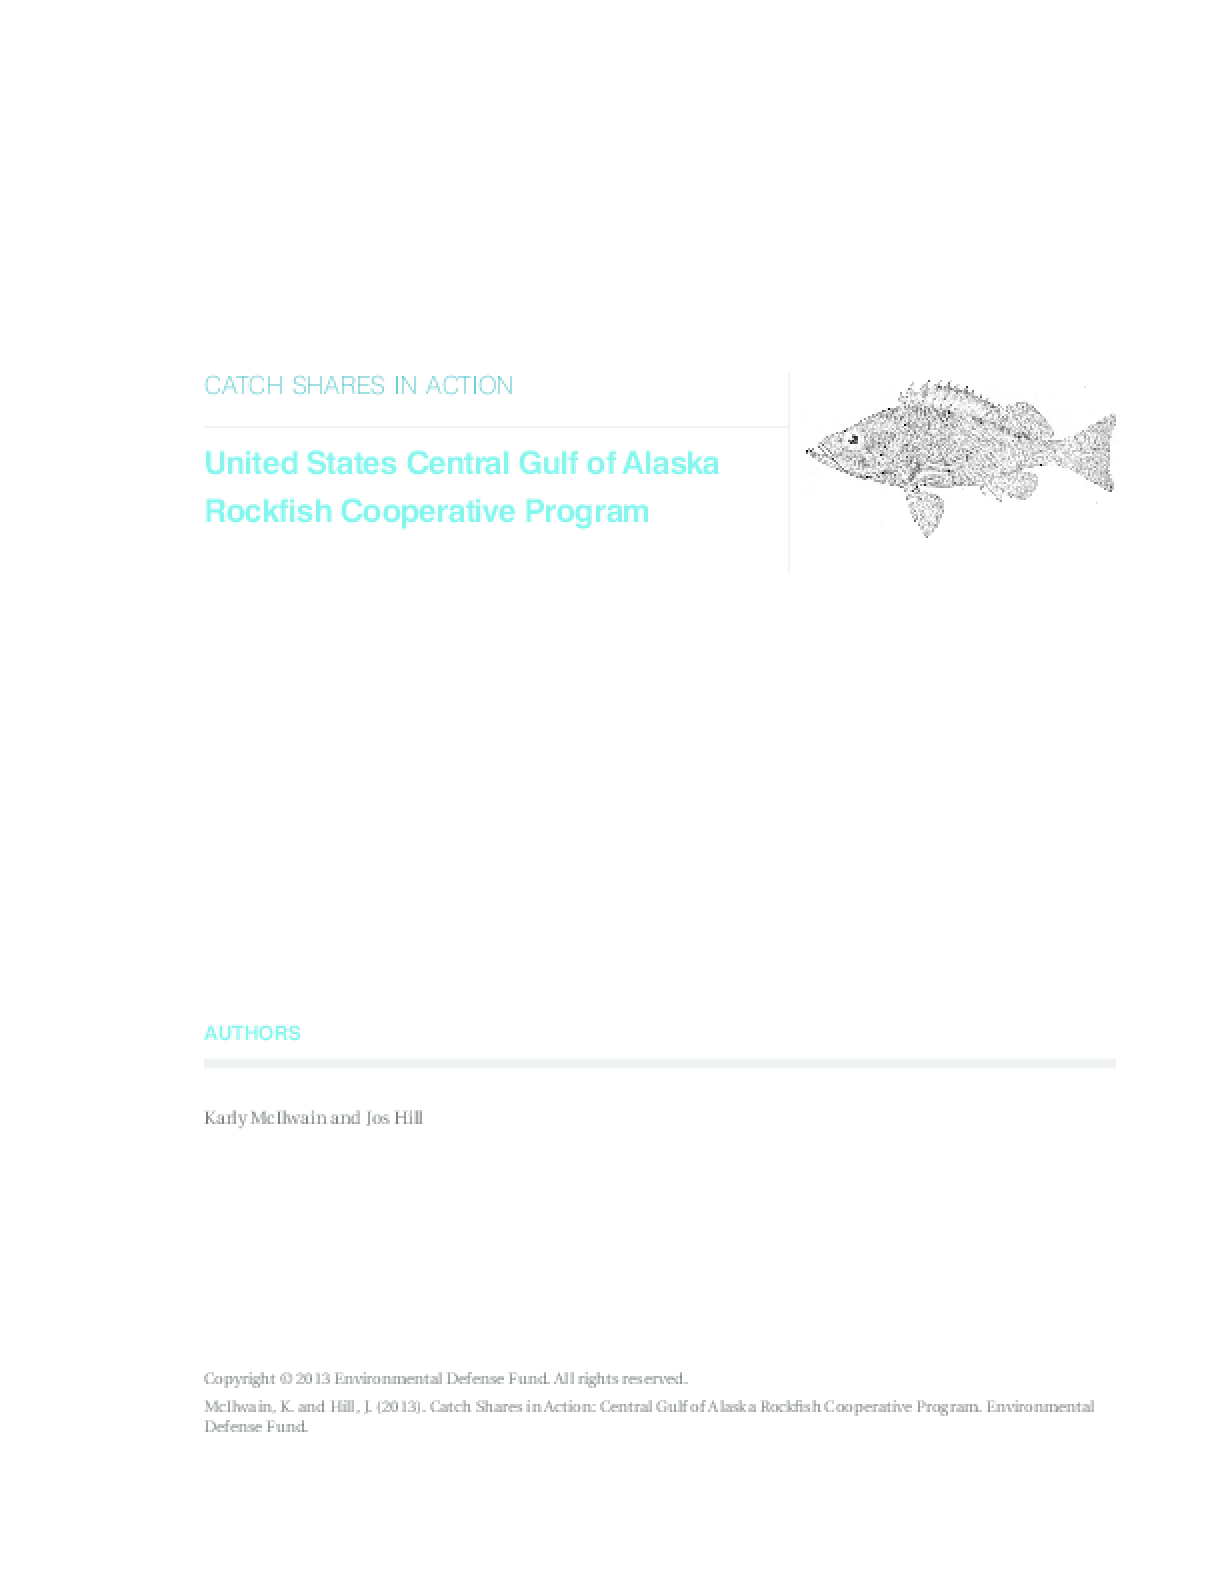 Catch Shares in Action: United States Central Gulf of Alaska Rockfish Cooperative Program